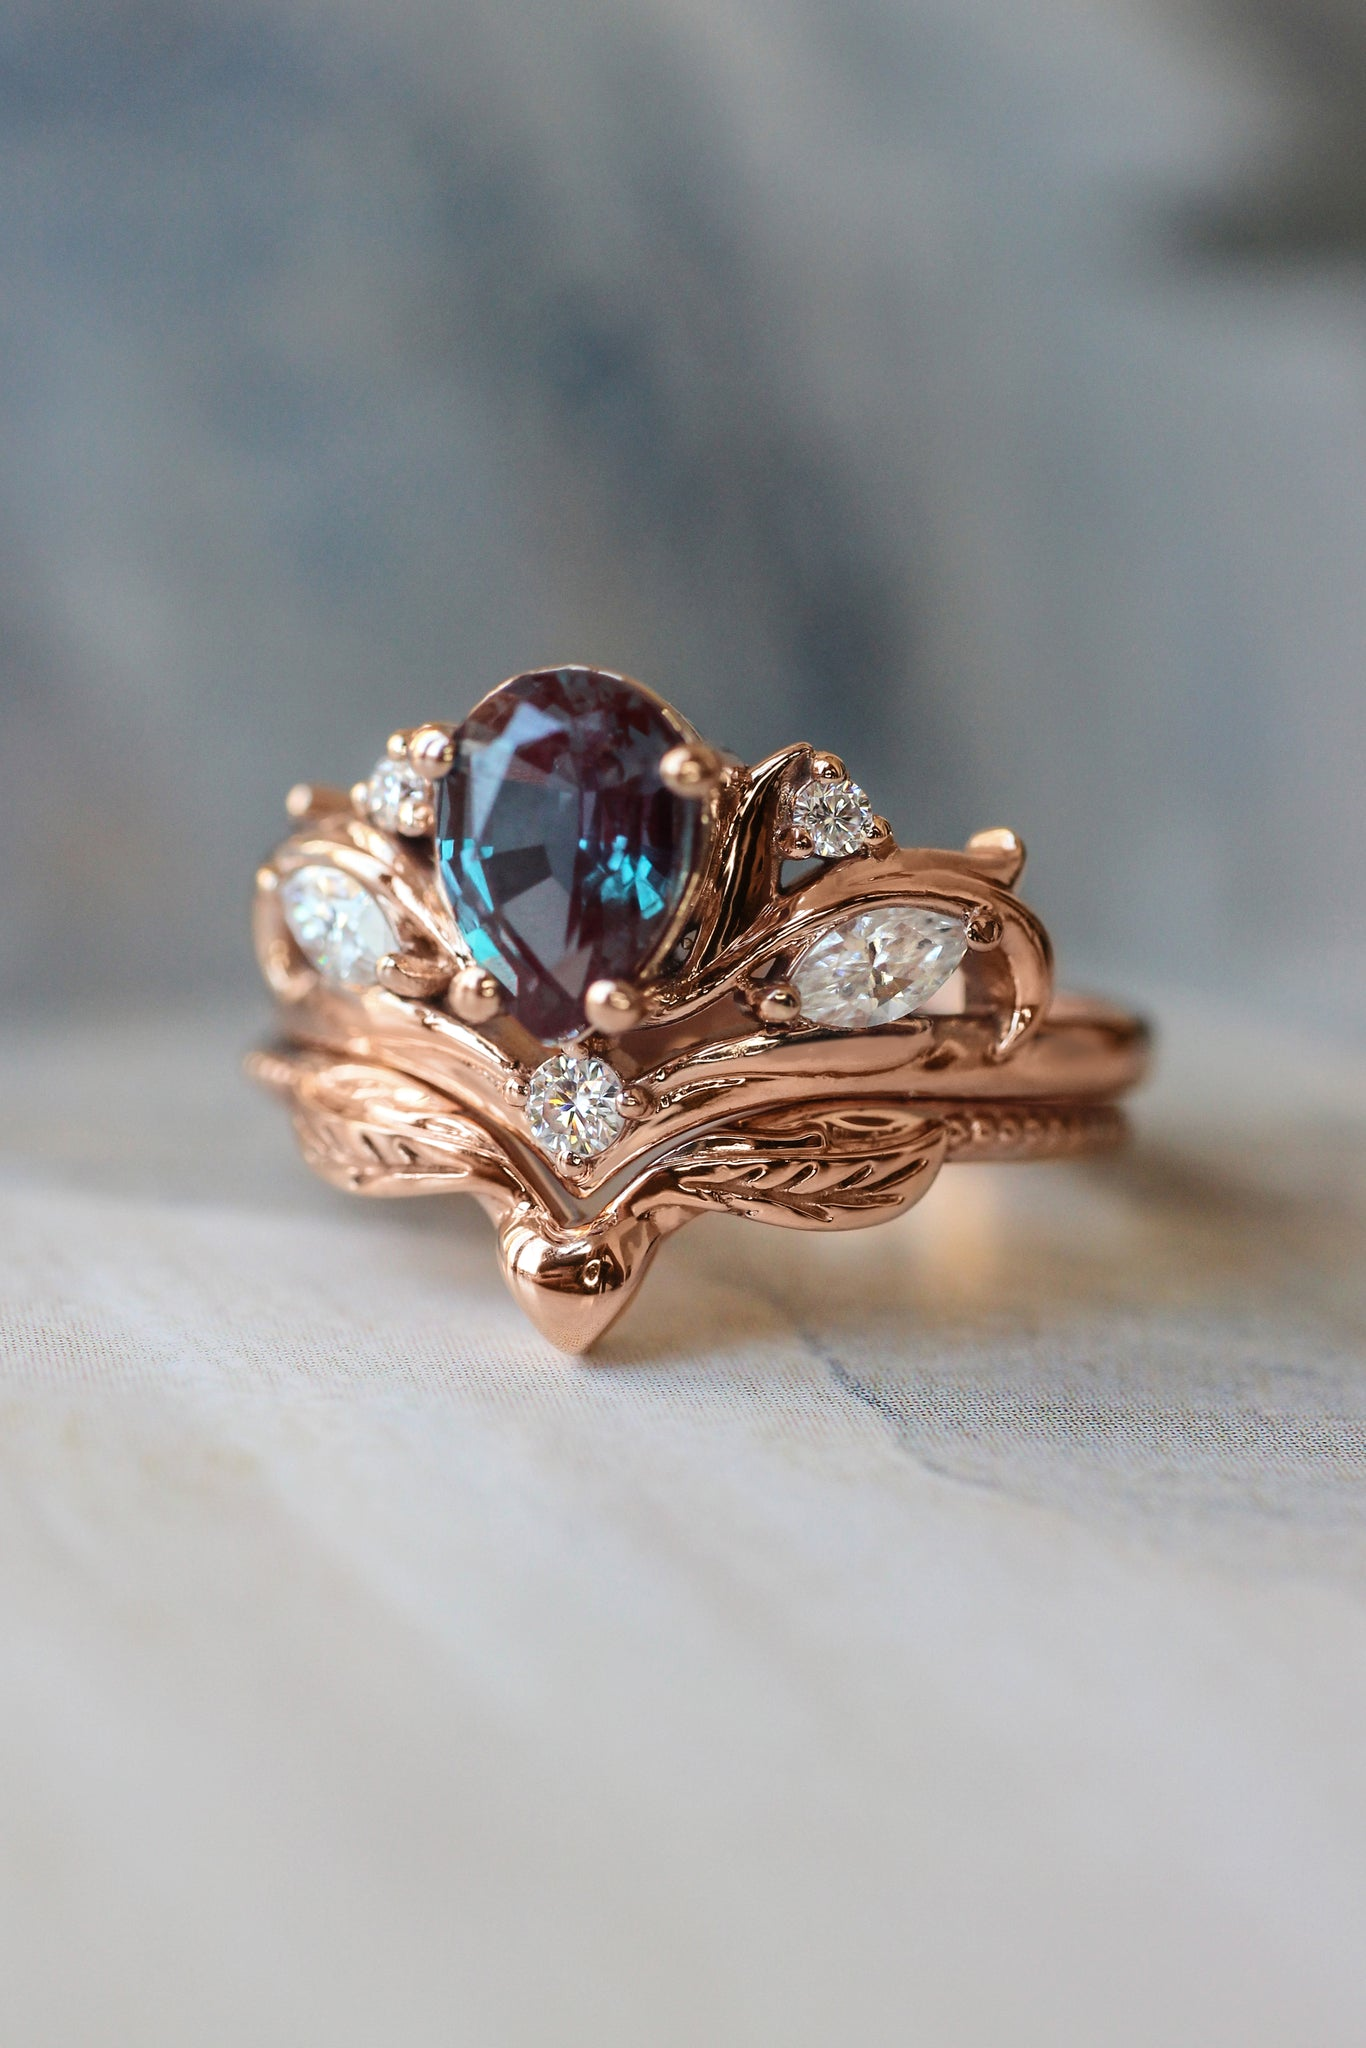 Bridal ring set with pear cut alexandrite / Swanlake - Eden Garden Jewelry